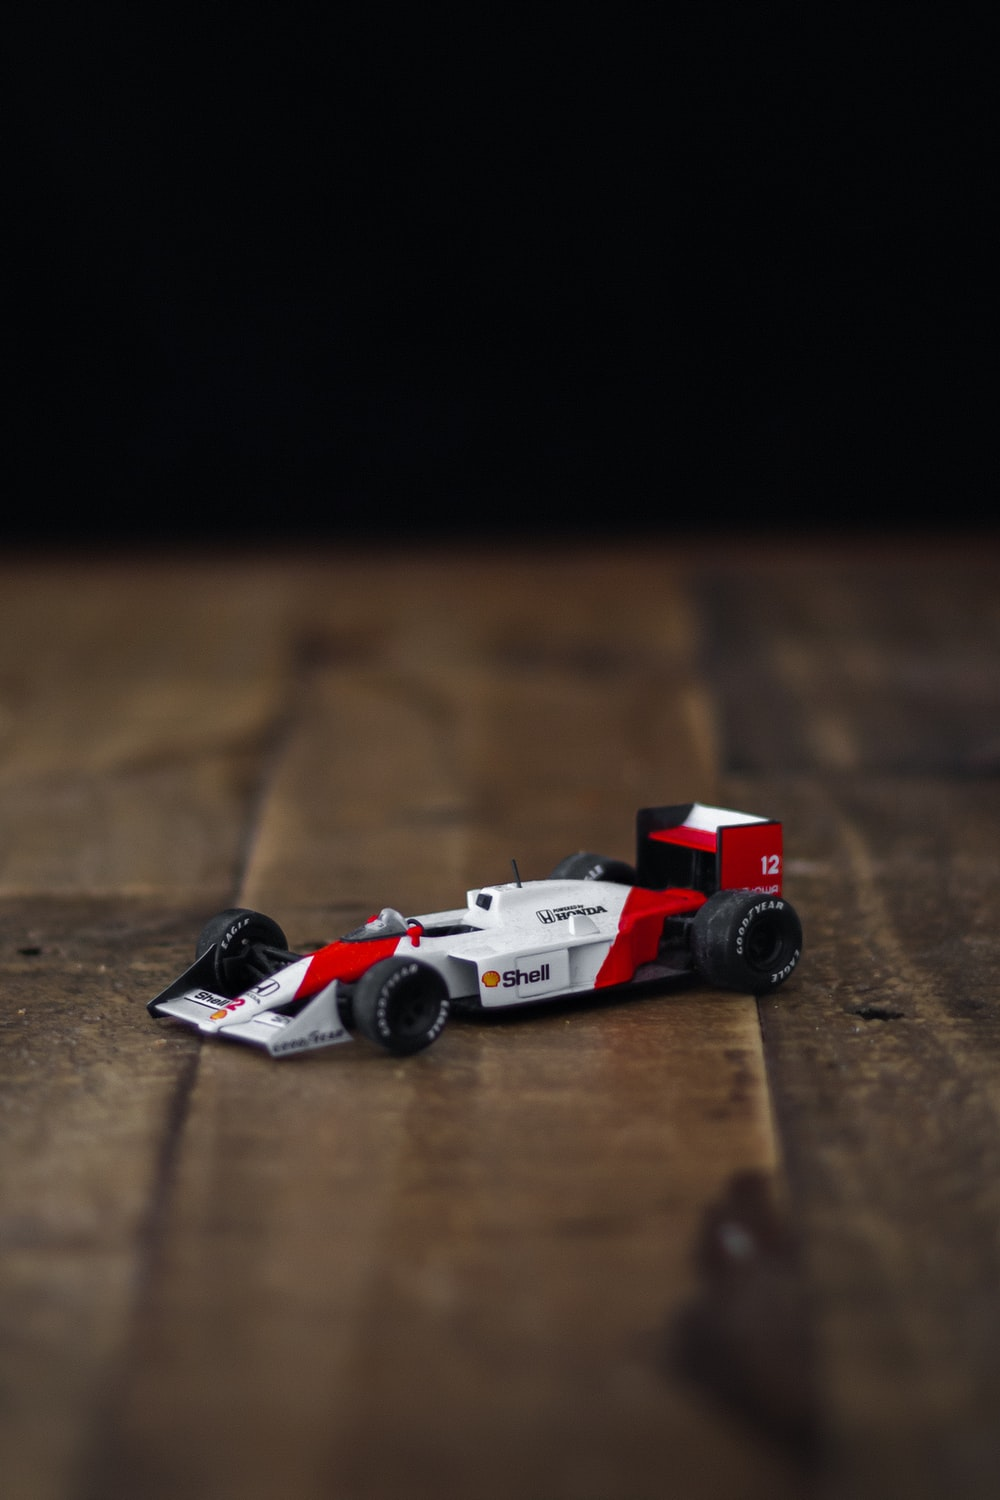 red and white lego car on brown wooden table